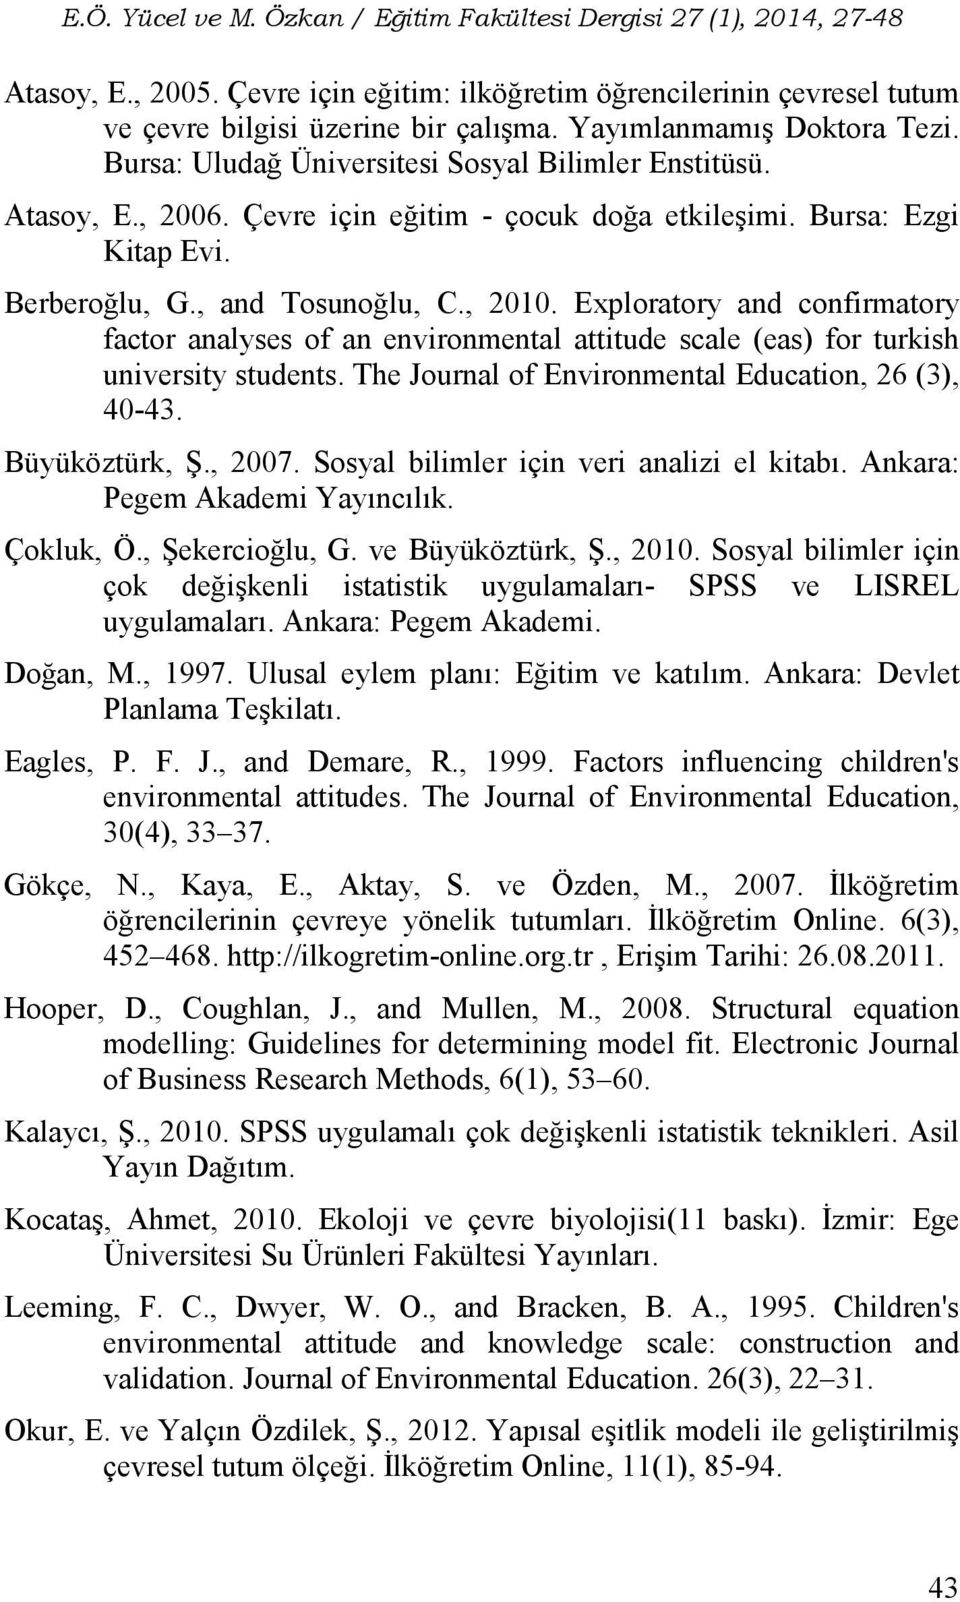 Exploratory and confirmatory factor analyses of an environmental attitude scale (eas) for turkish university students. The Journal of Environmental Education, 26 (3), 40-43. Büyüköztürk, Ş., 2007.